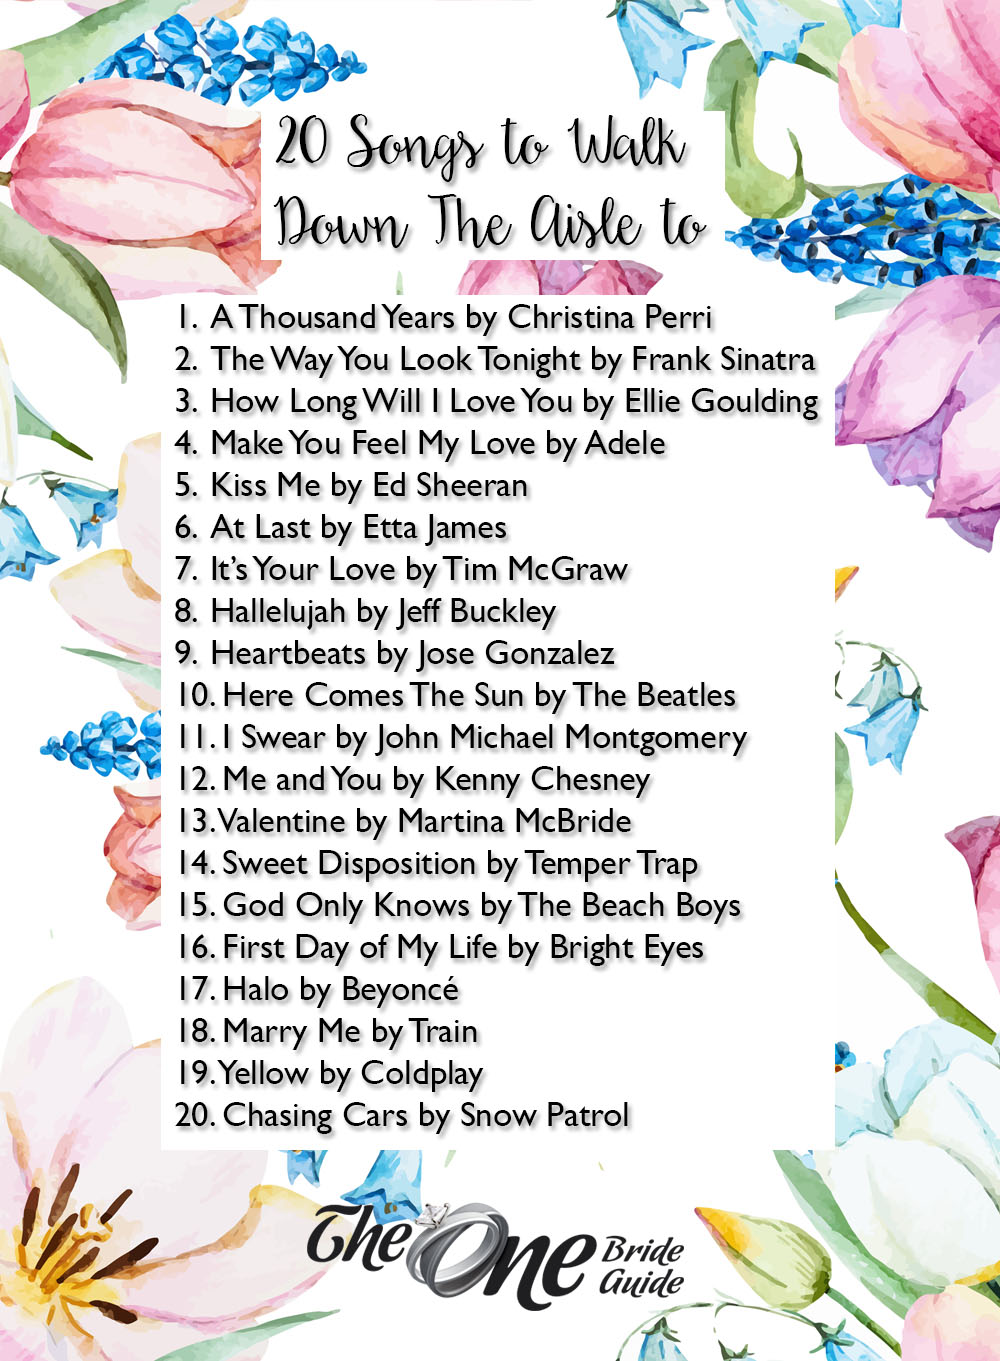 20 Songs To Walk Down The Aisle To